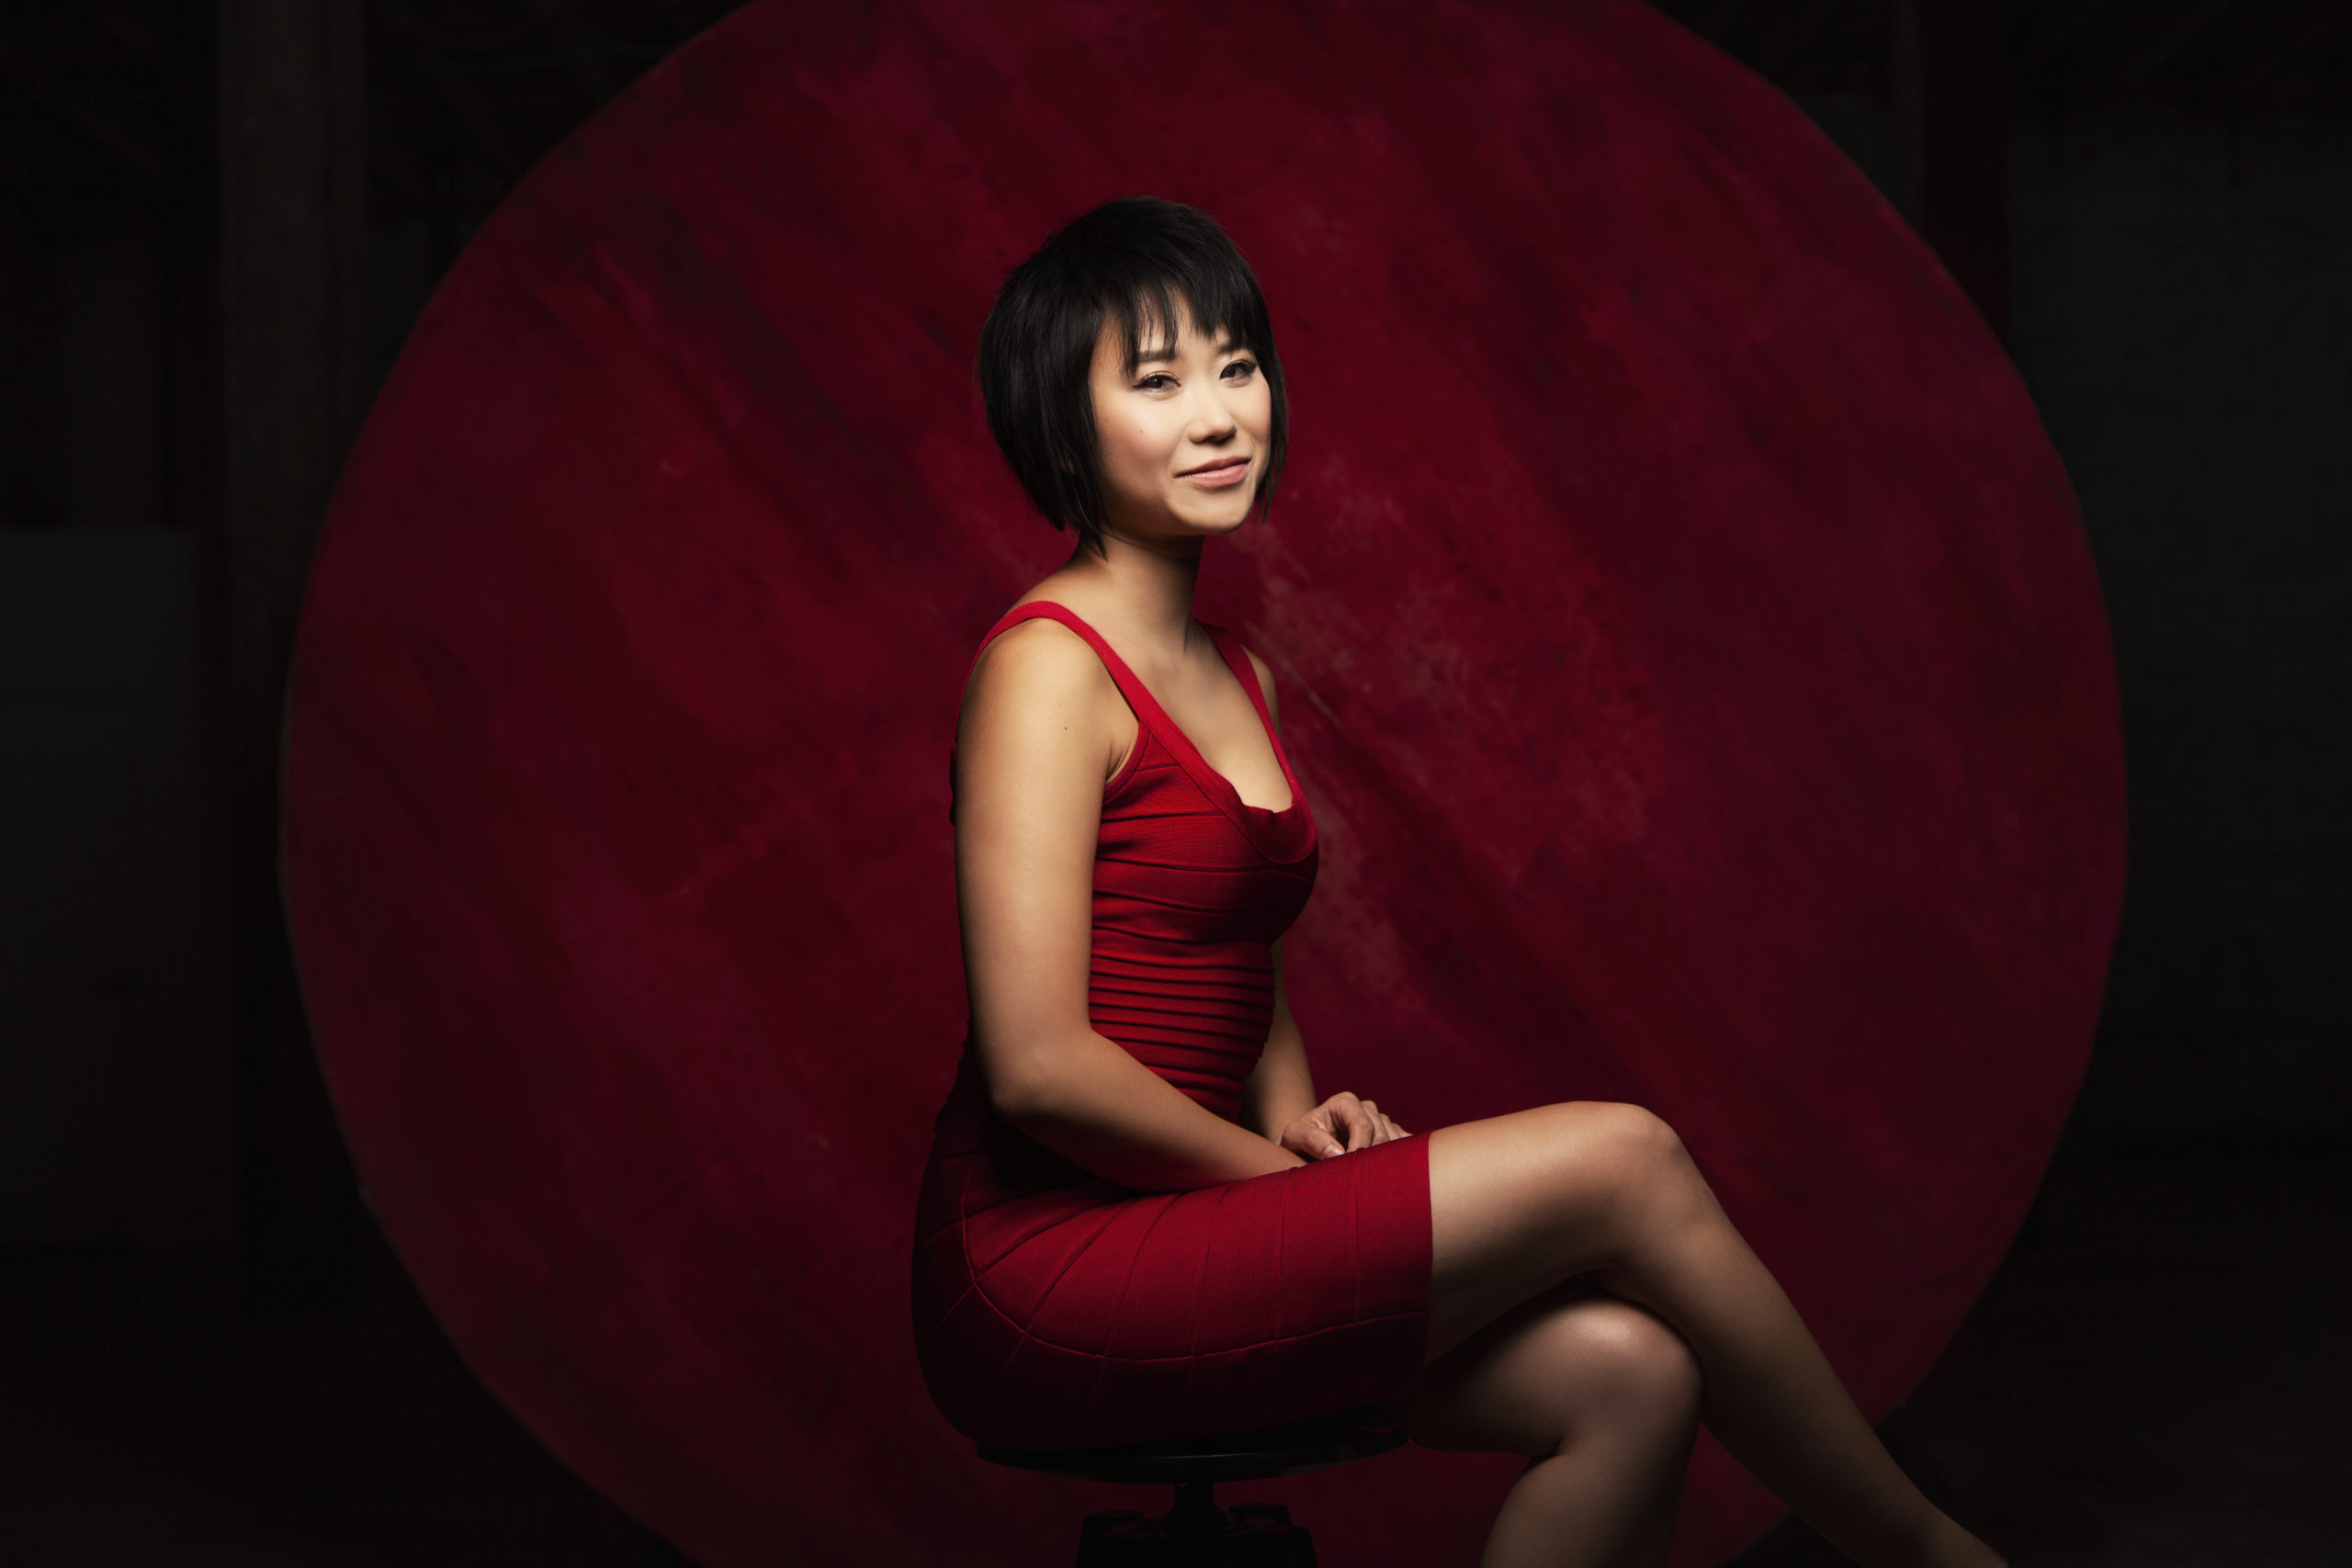 Yuja Wang classical music piano artist Chinese creative